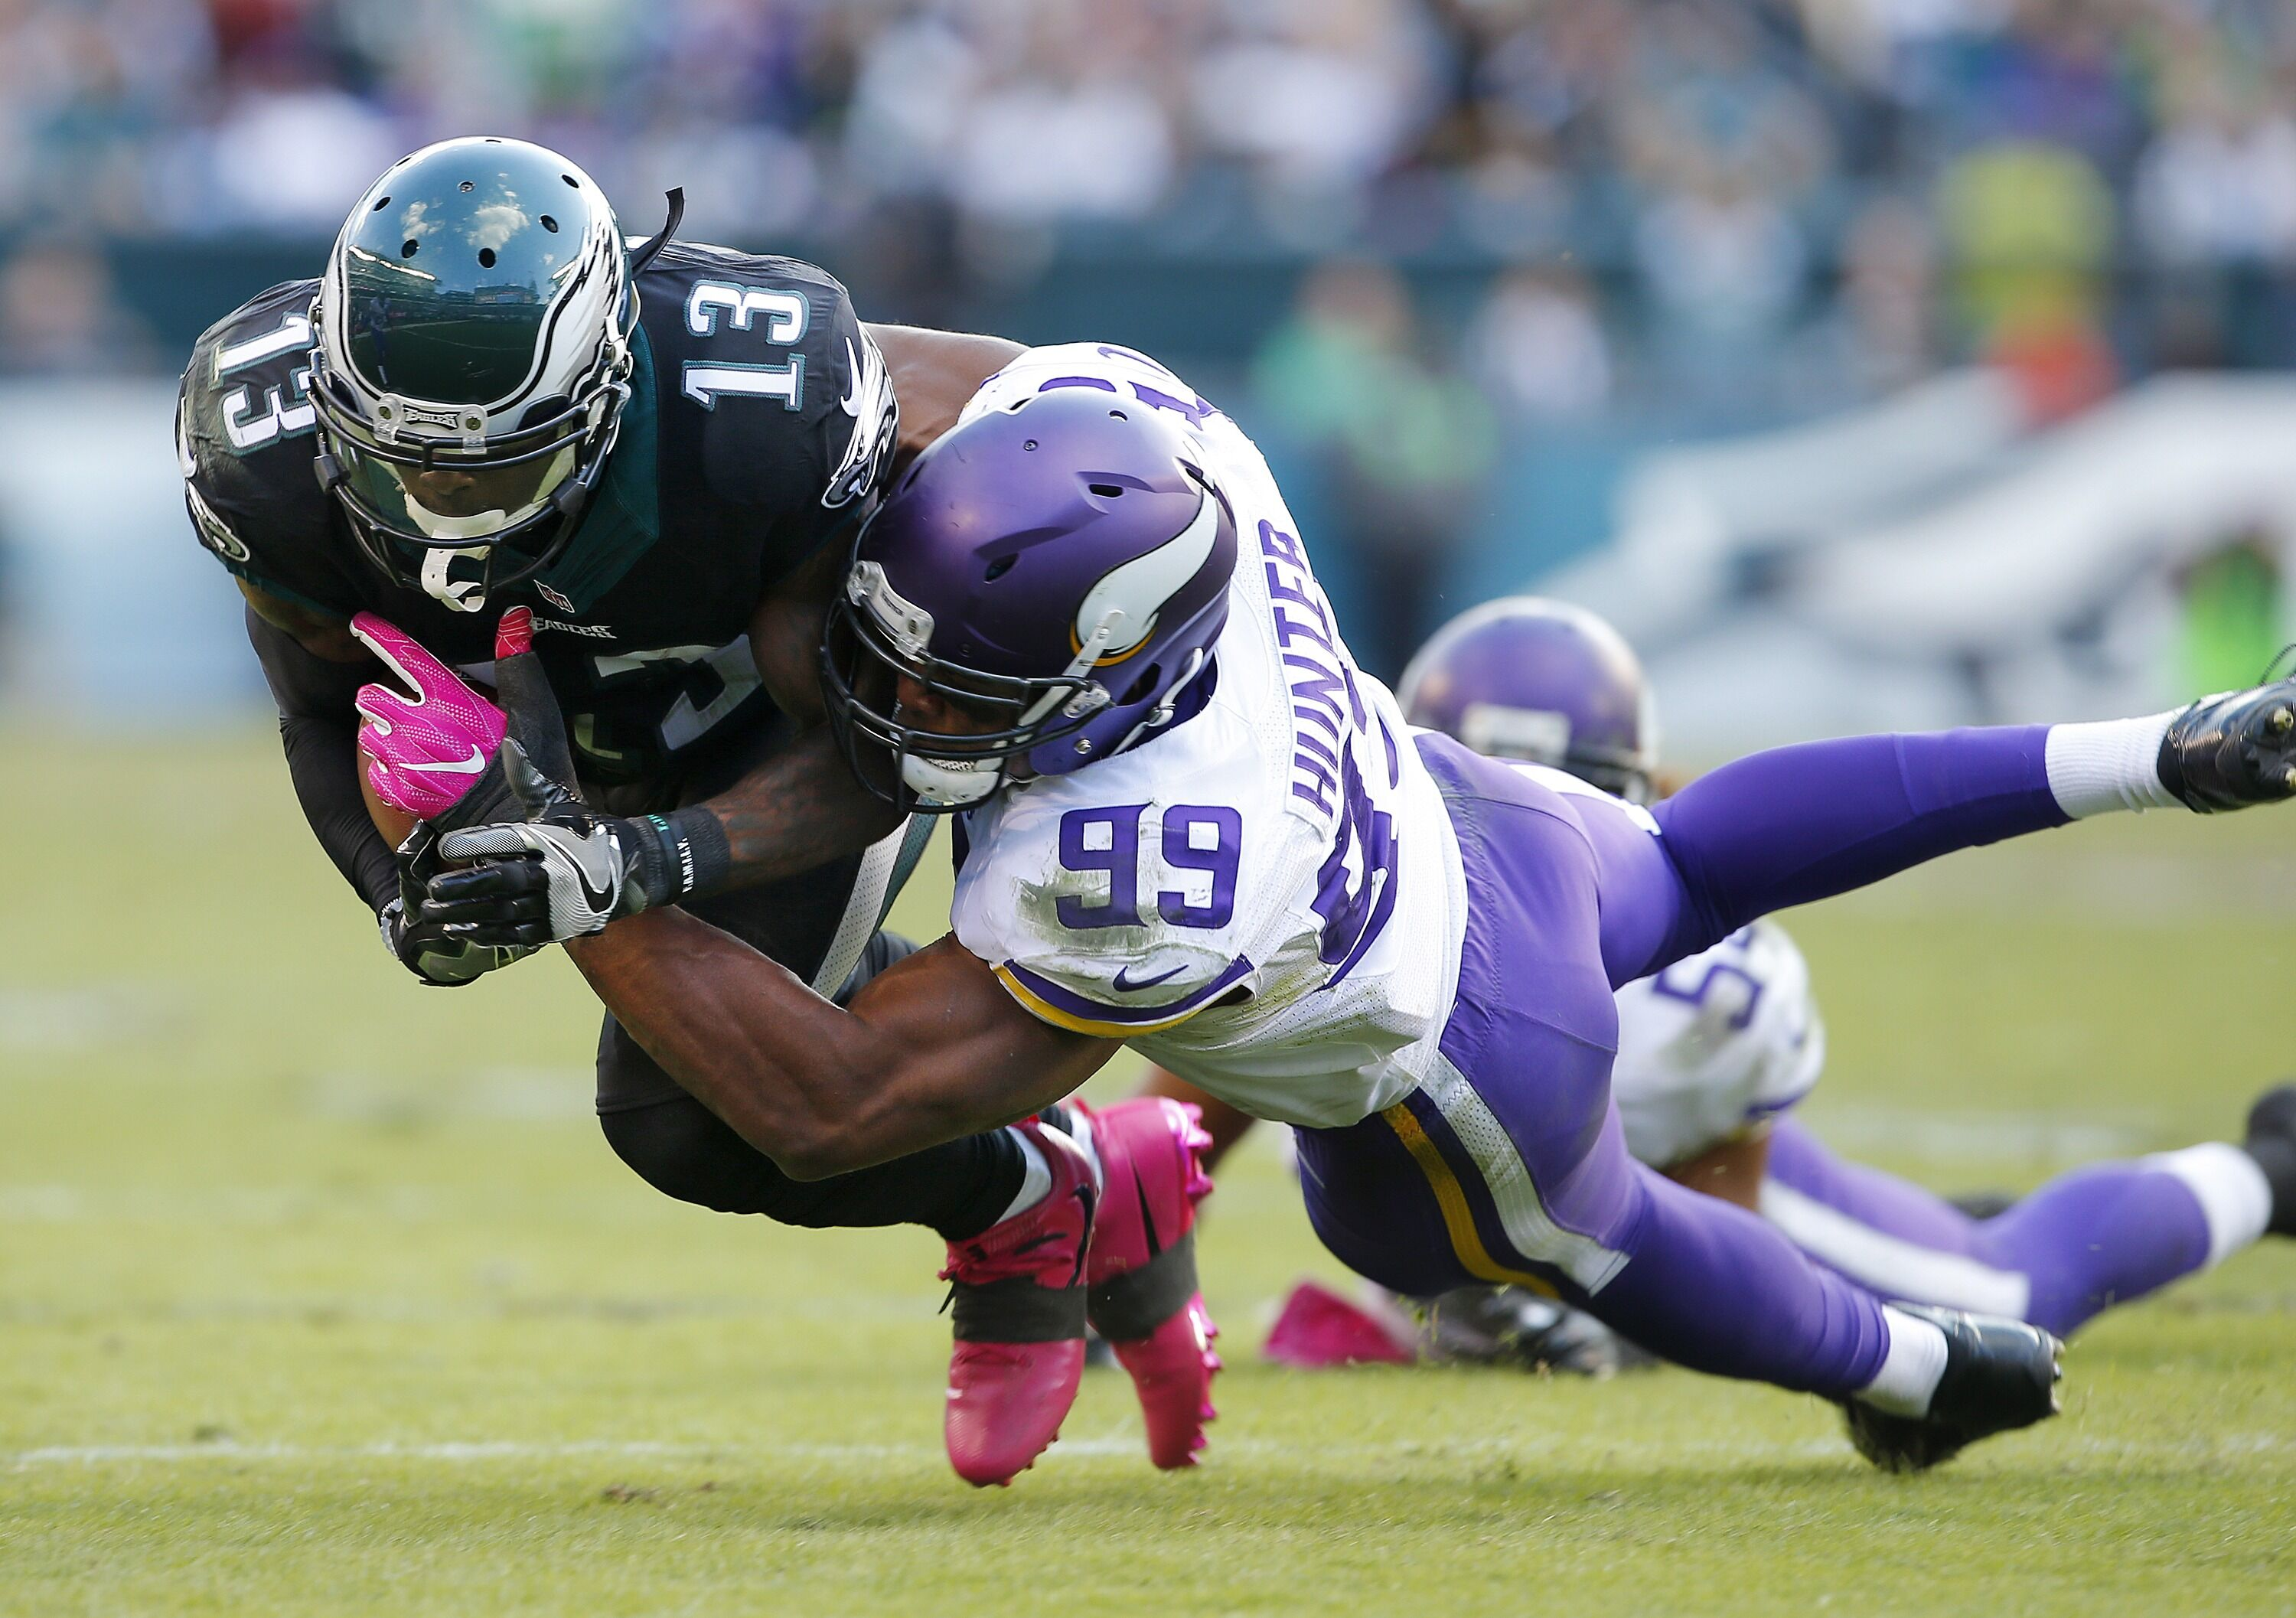 617644540-minnesota-vikings-v-philadelphia-eagles.jpg